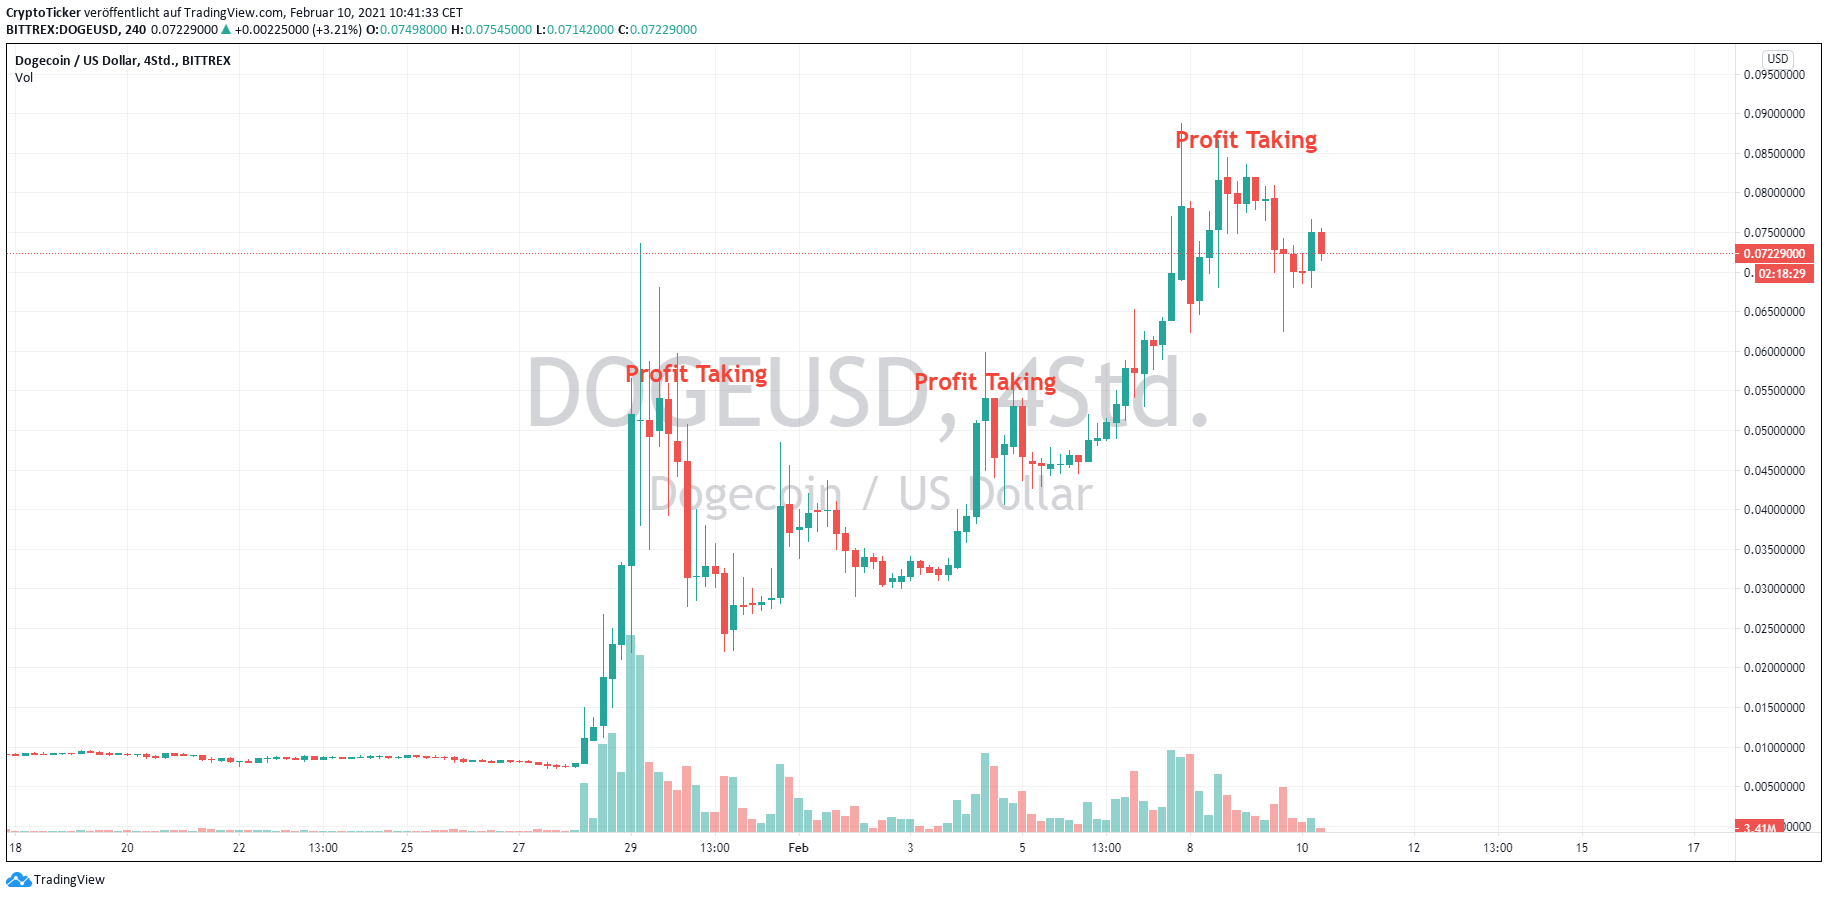 DOGE/USD 4-hours chart showing Dogecoin's current uptrend